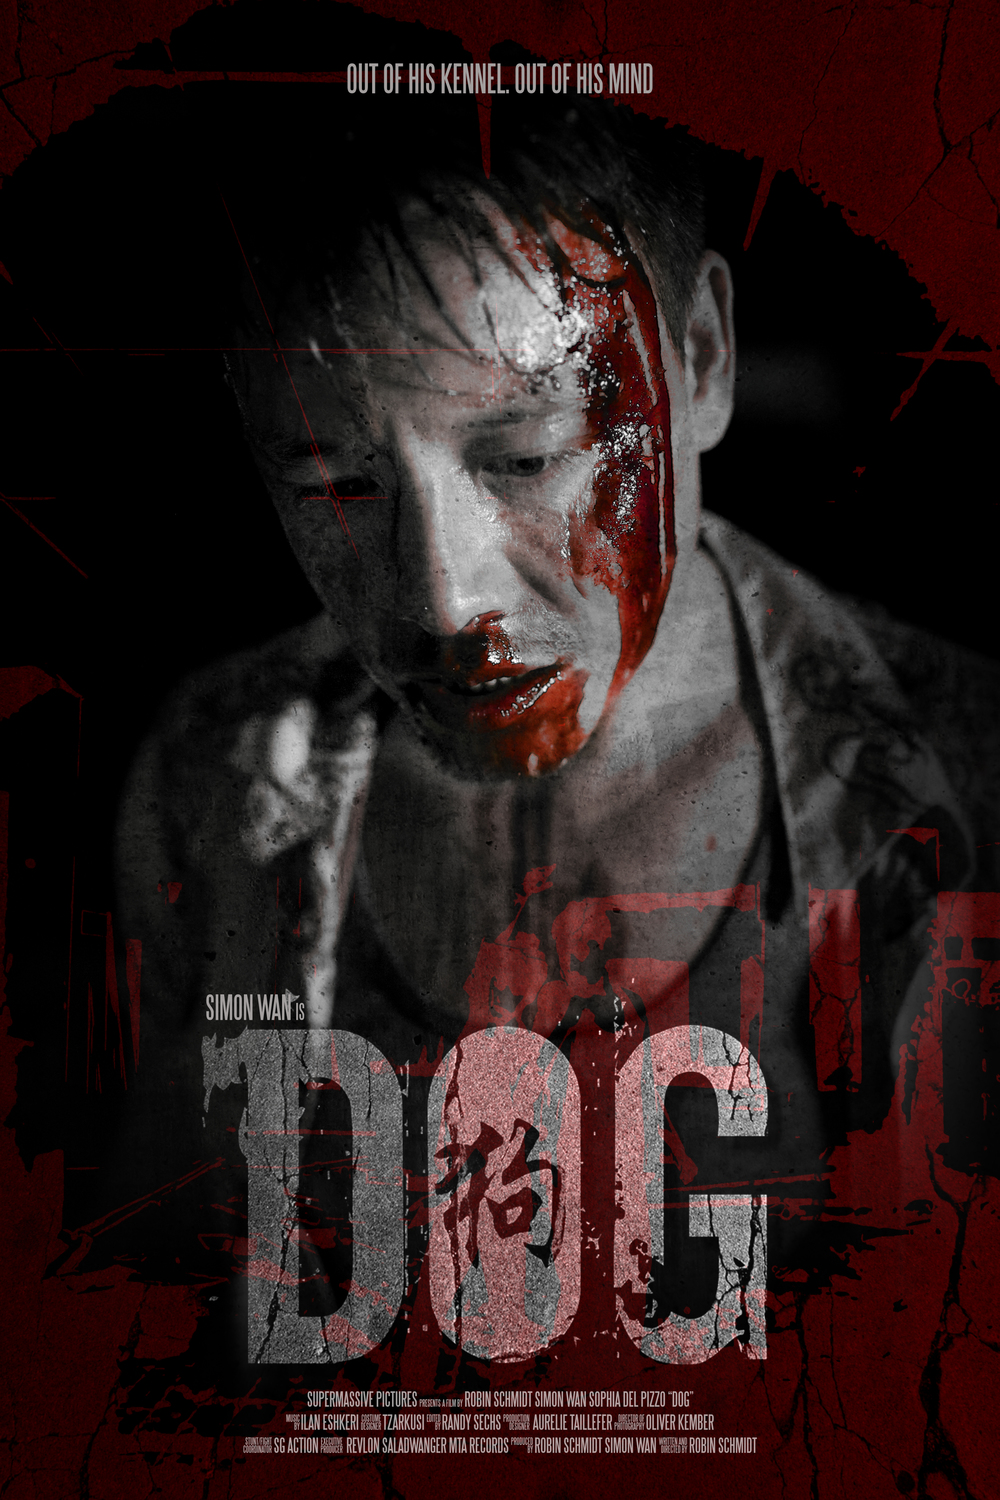 Dog  - 40 mins - Action/Crime, United Kingdom  Directed by Robin Schmidt  ARKANSAS PREMIERE  Synopsis:  DOG, the local triad 'enforcer' finds himself dying of boredom when he's ordered to keep a derelict building free from intruders but when a wily heroin addict tricks her way into staying he soon finds himself looking at violence in a very different way.    Facebook